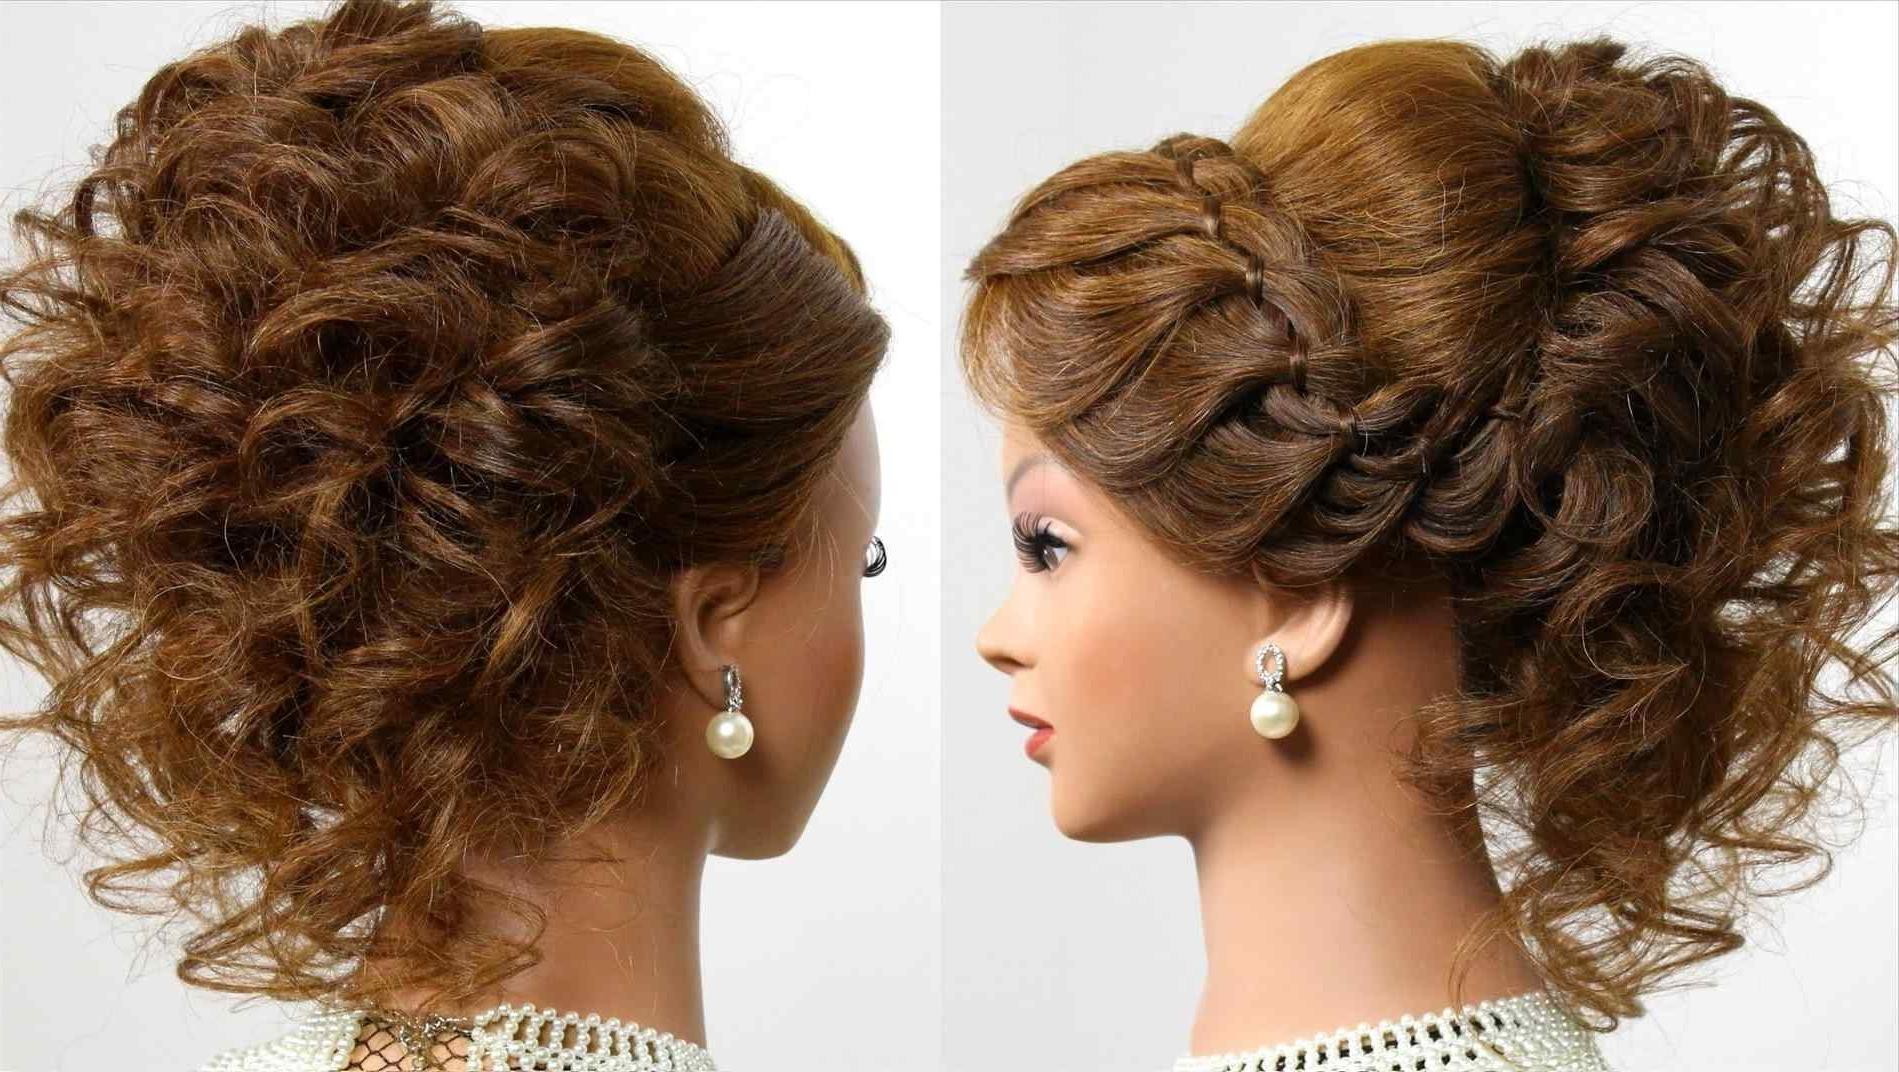 Ideas Short Simple Updo Hairstyles For Homecoming Curly Hair S U Inside Easy Updo Hairstyles For Curly Hair (View 9 of 15)